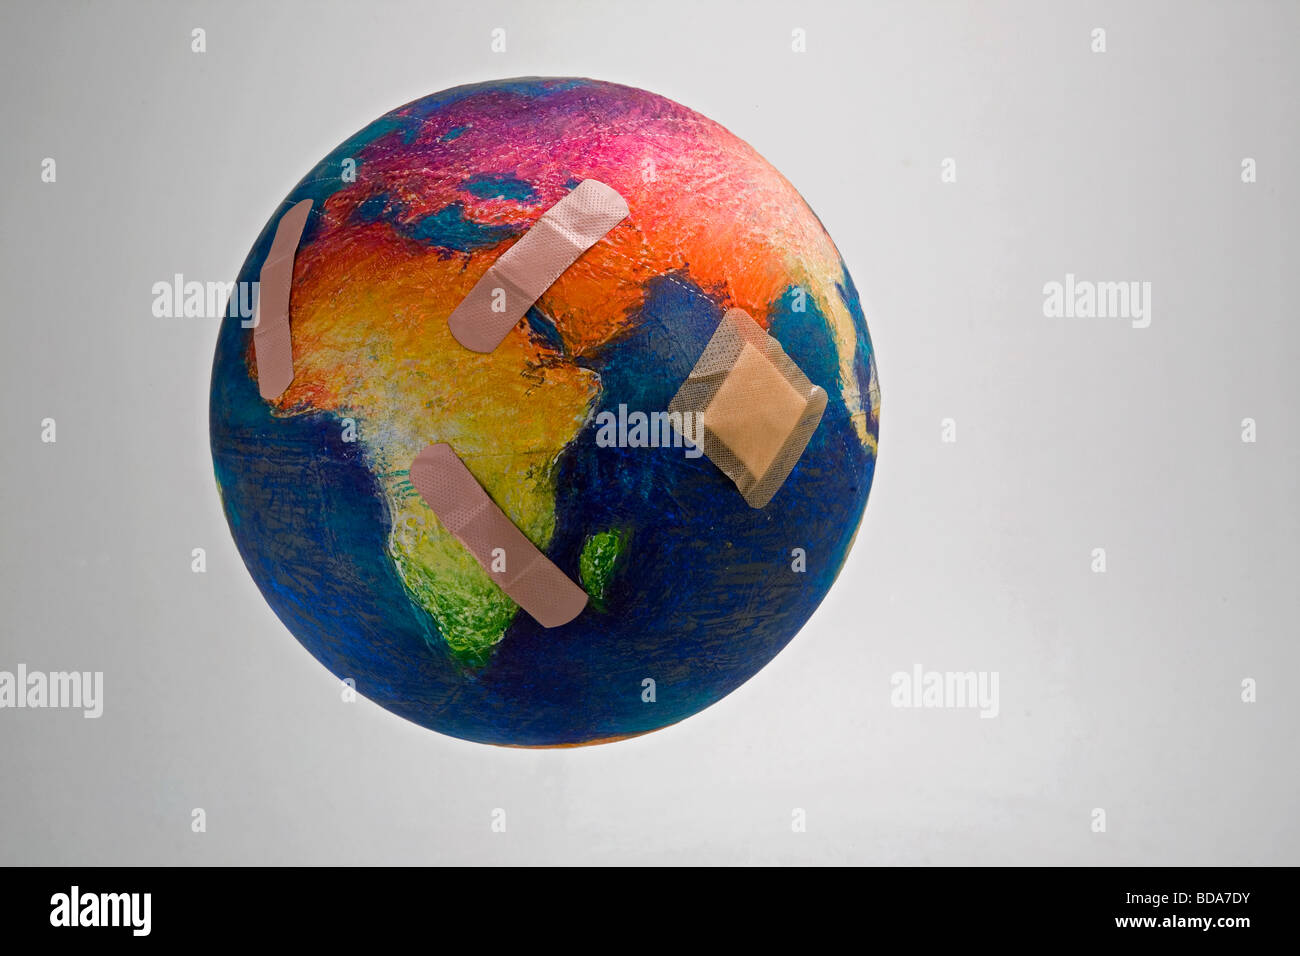 Still shot of a world globe with band aids on Africa and Asia - Stock Image